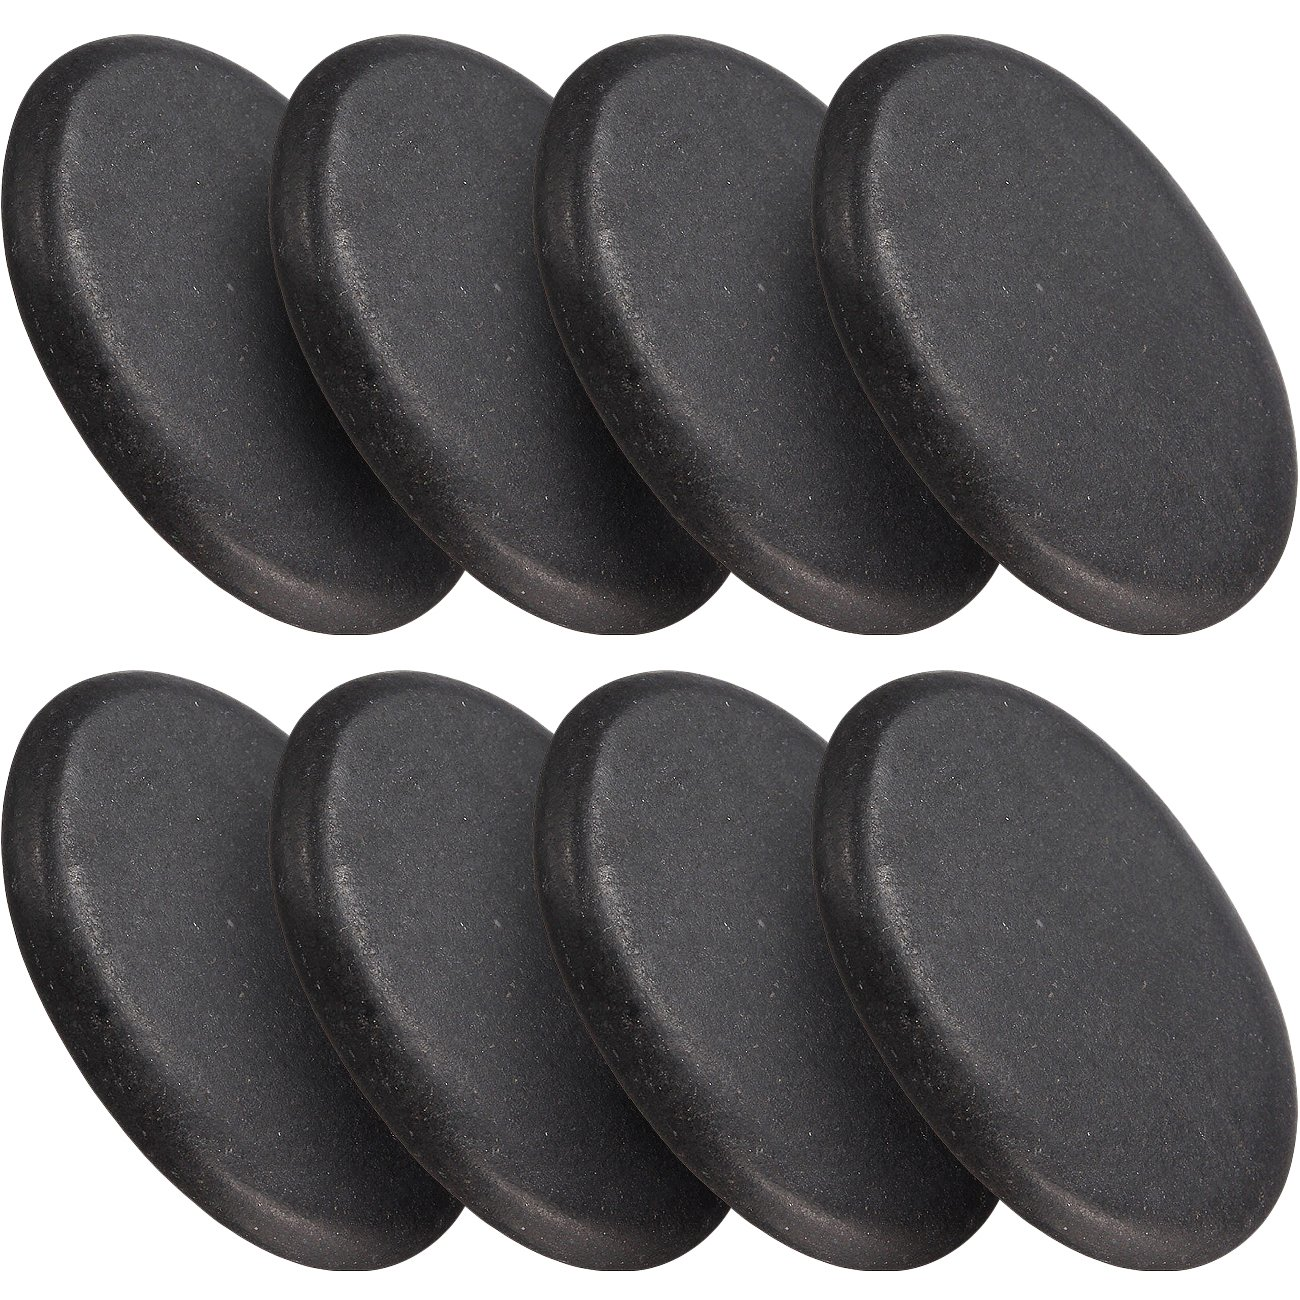 Sivan Health and Fitness 8-Piece Large Black Basalt Hot Stone Set — Great for Spas, Massage Therapy, Relaxation, and more